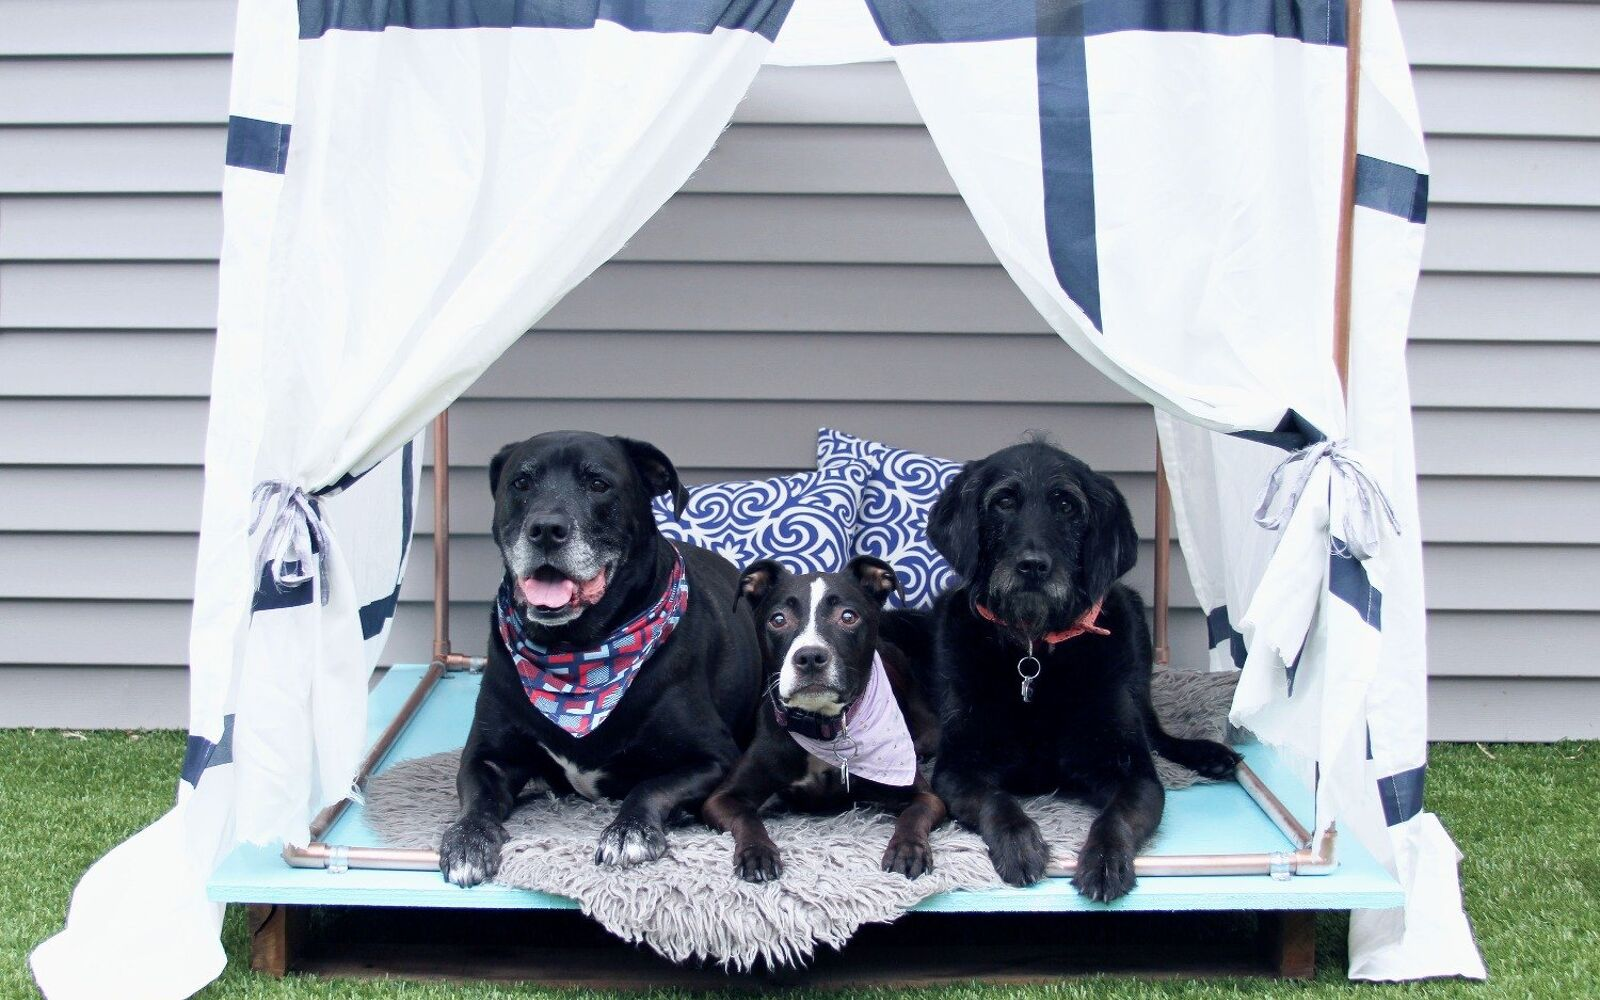 s upgrade your backyard with these 30 clever ideas, Give your dogs a cute outdoor lounger